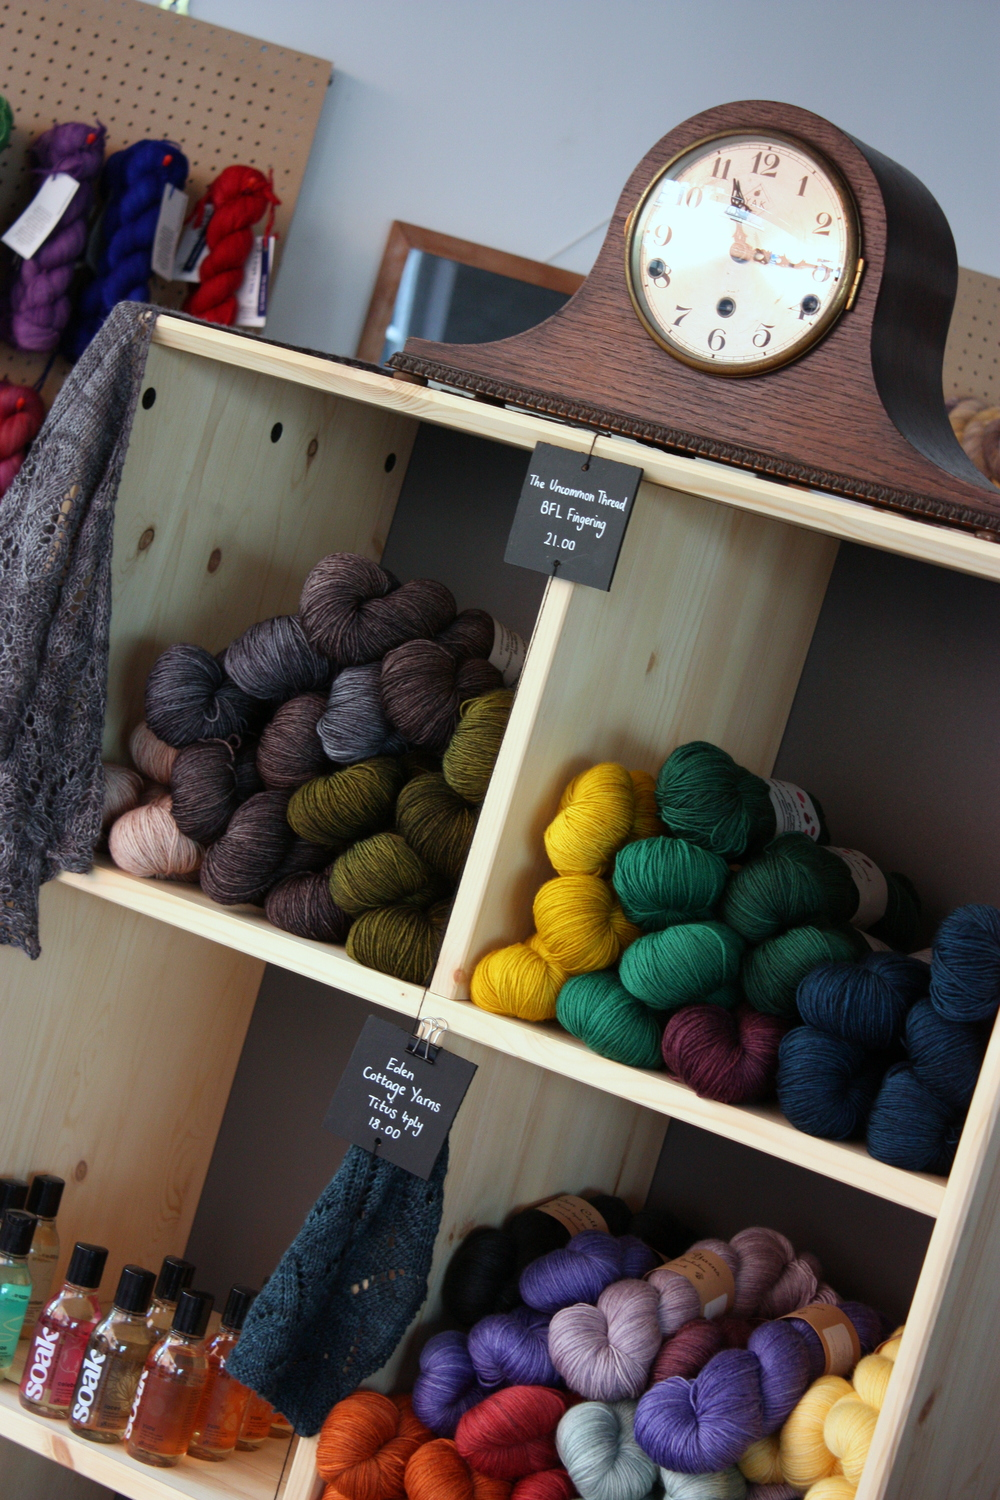 yarn on display at YAK